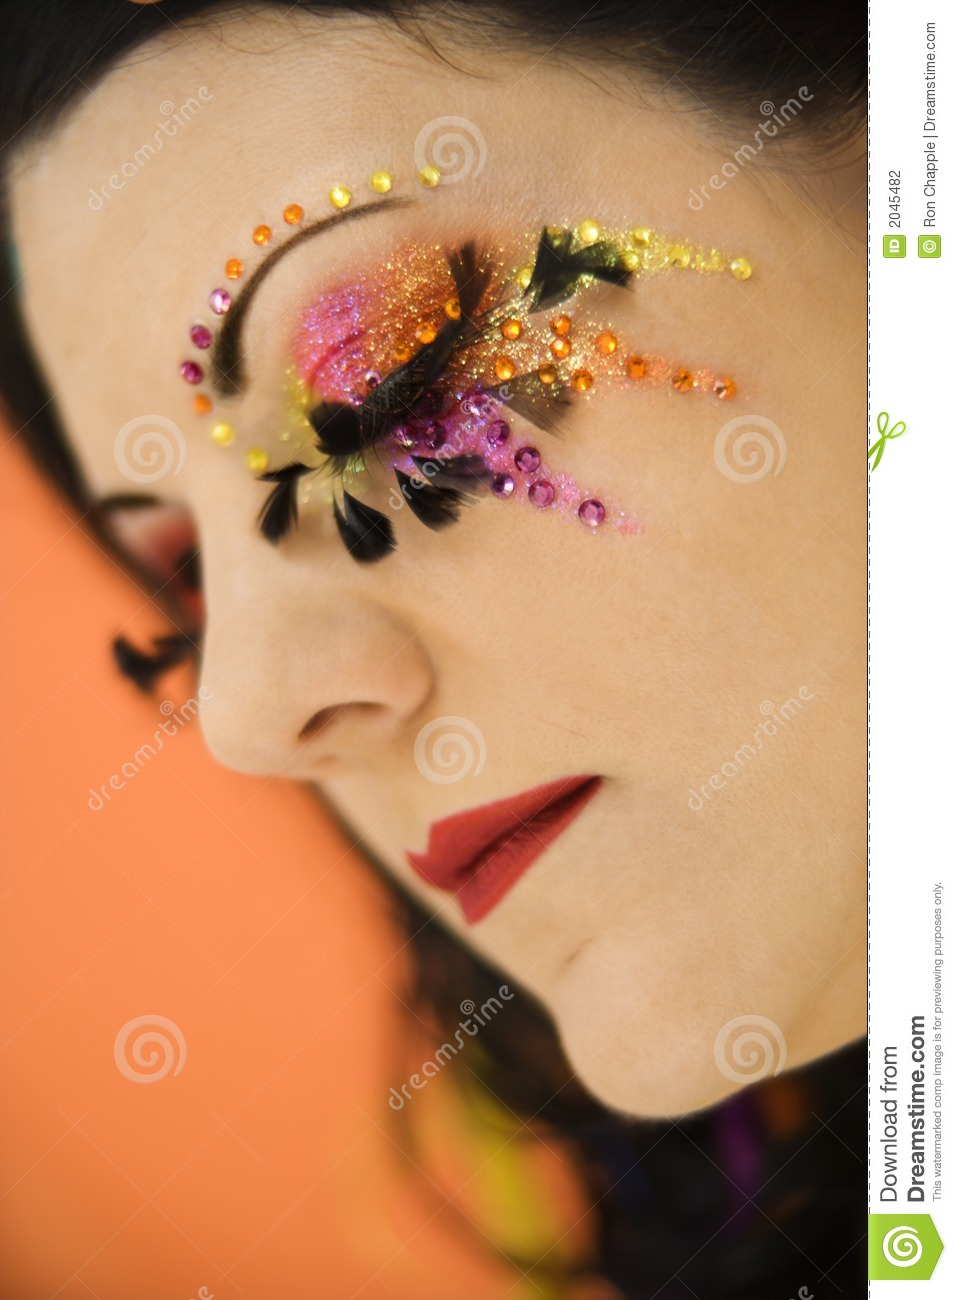 Woman Wearing Unique Makeup. Stock Photography - Image: 2045482